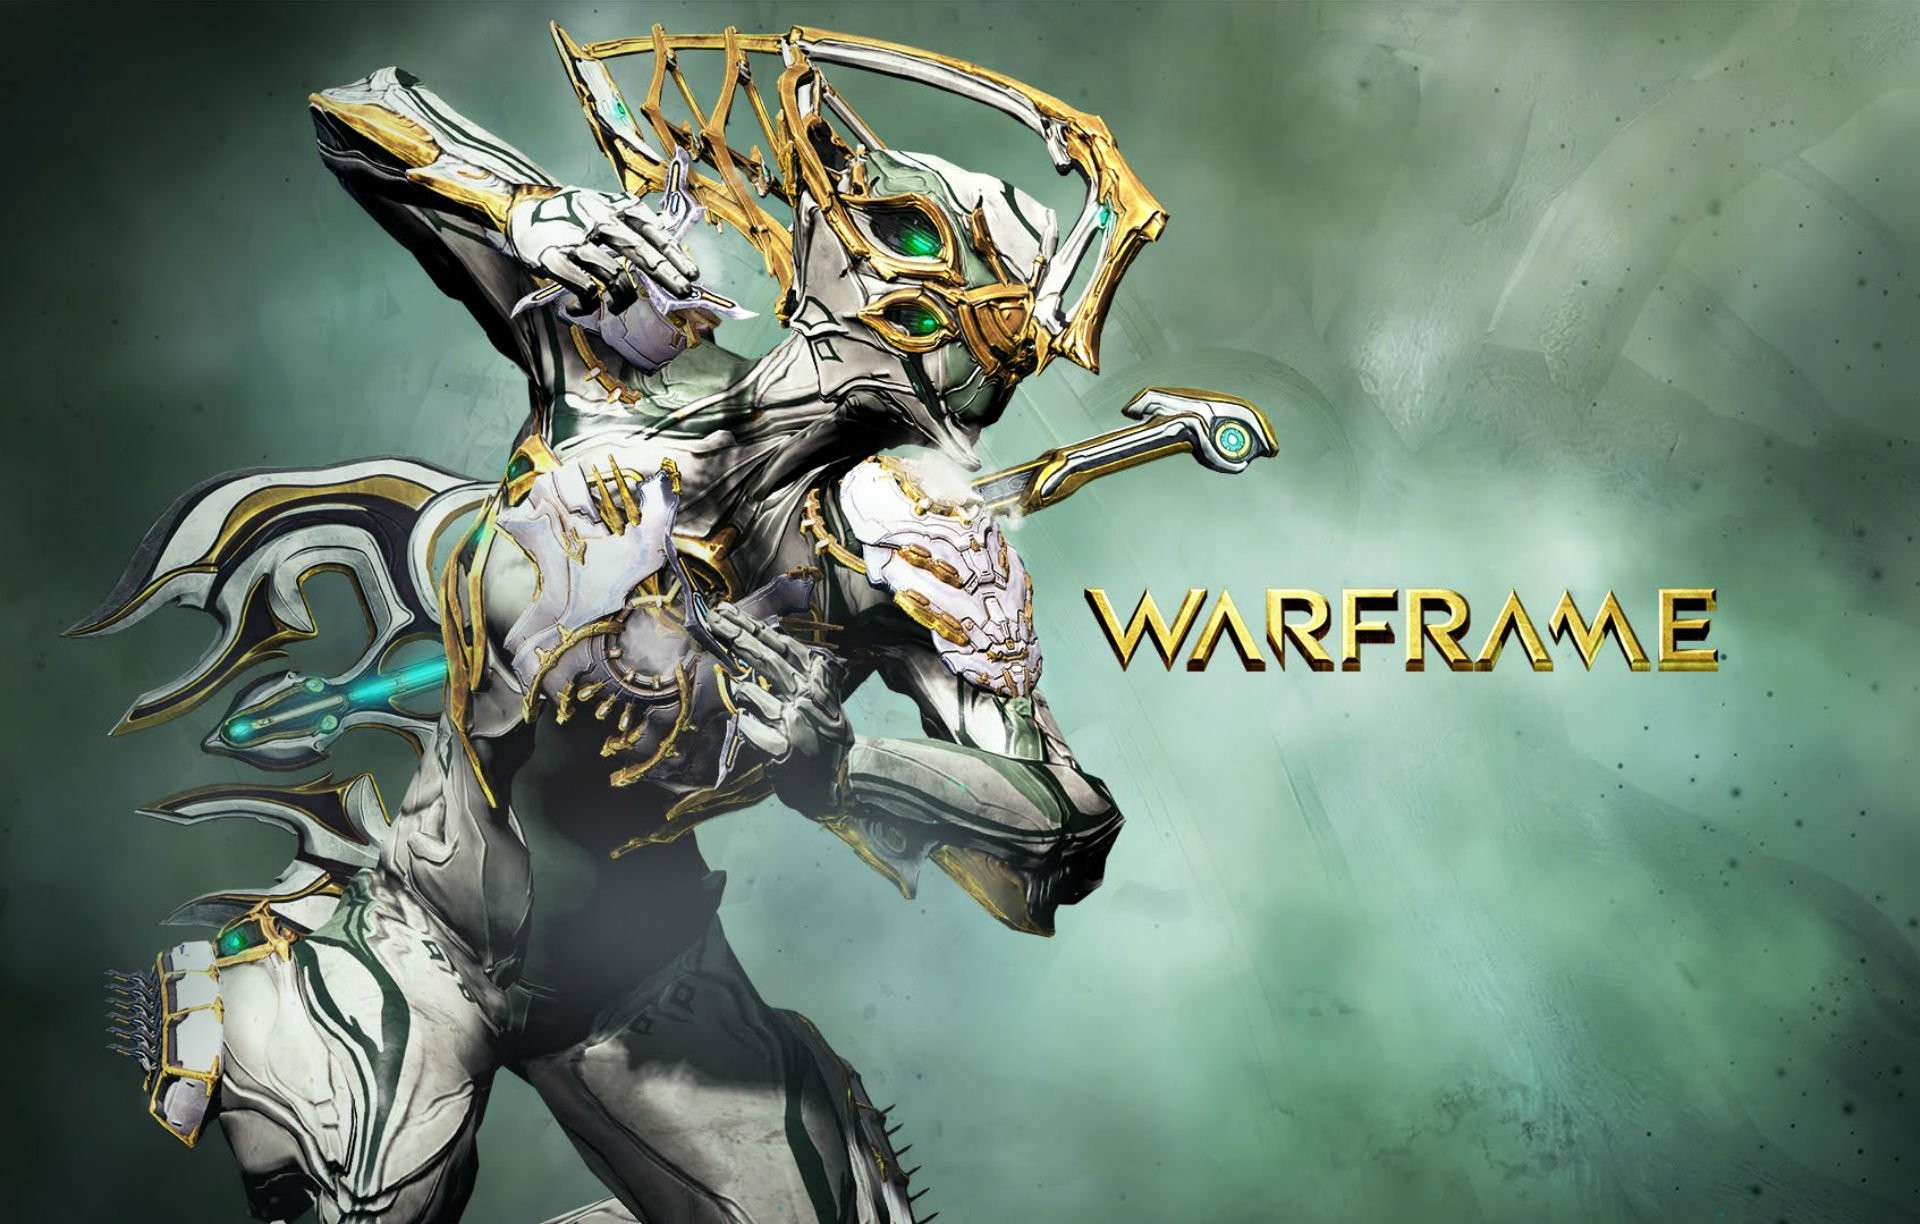 Warframe wallpaper download free backgrounds for - Warframe background ...